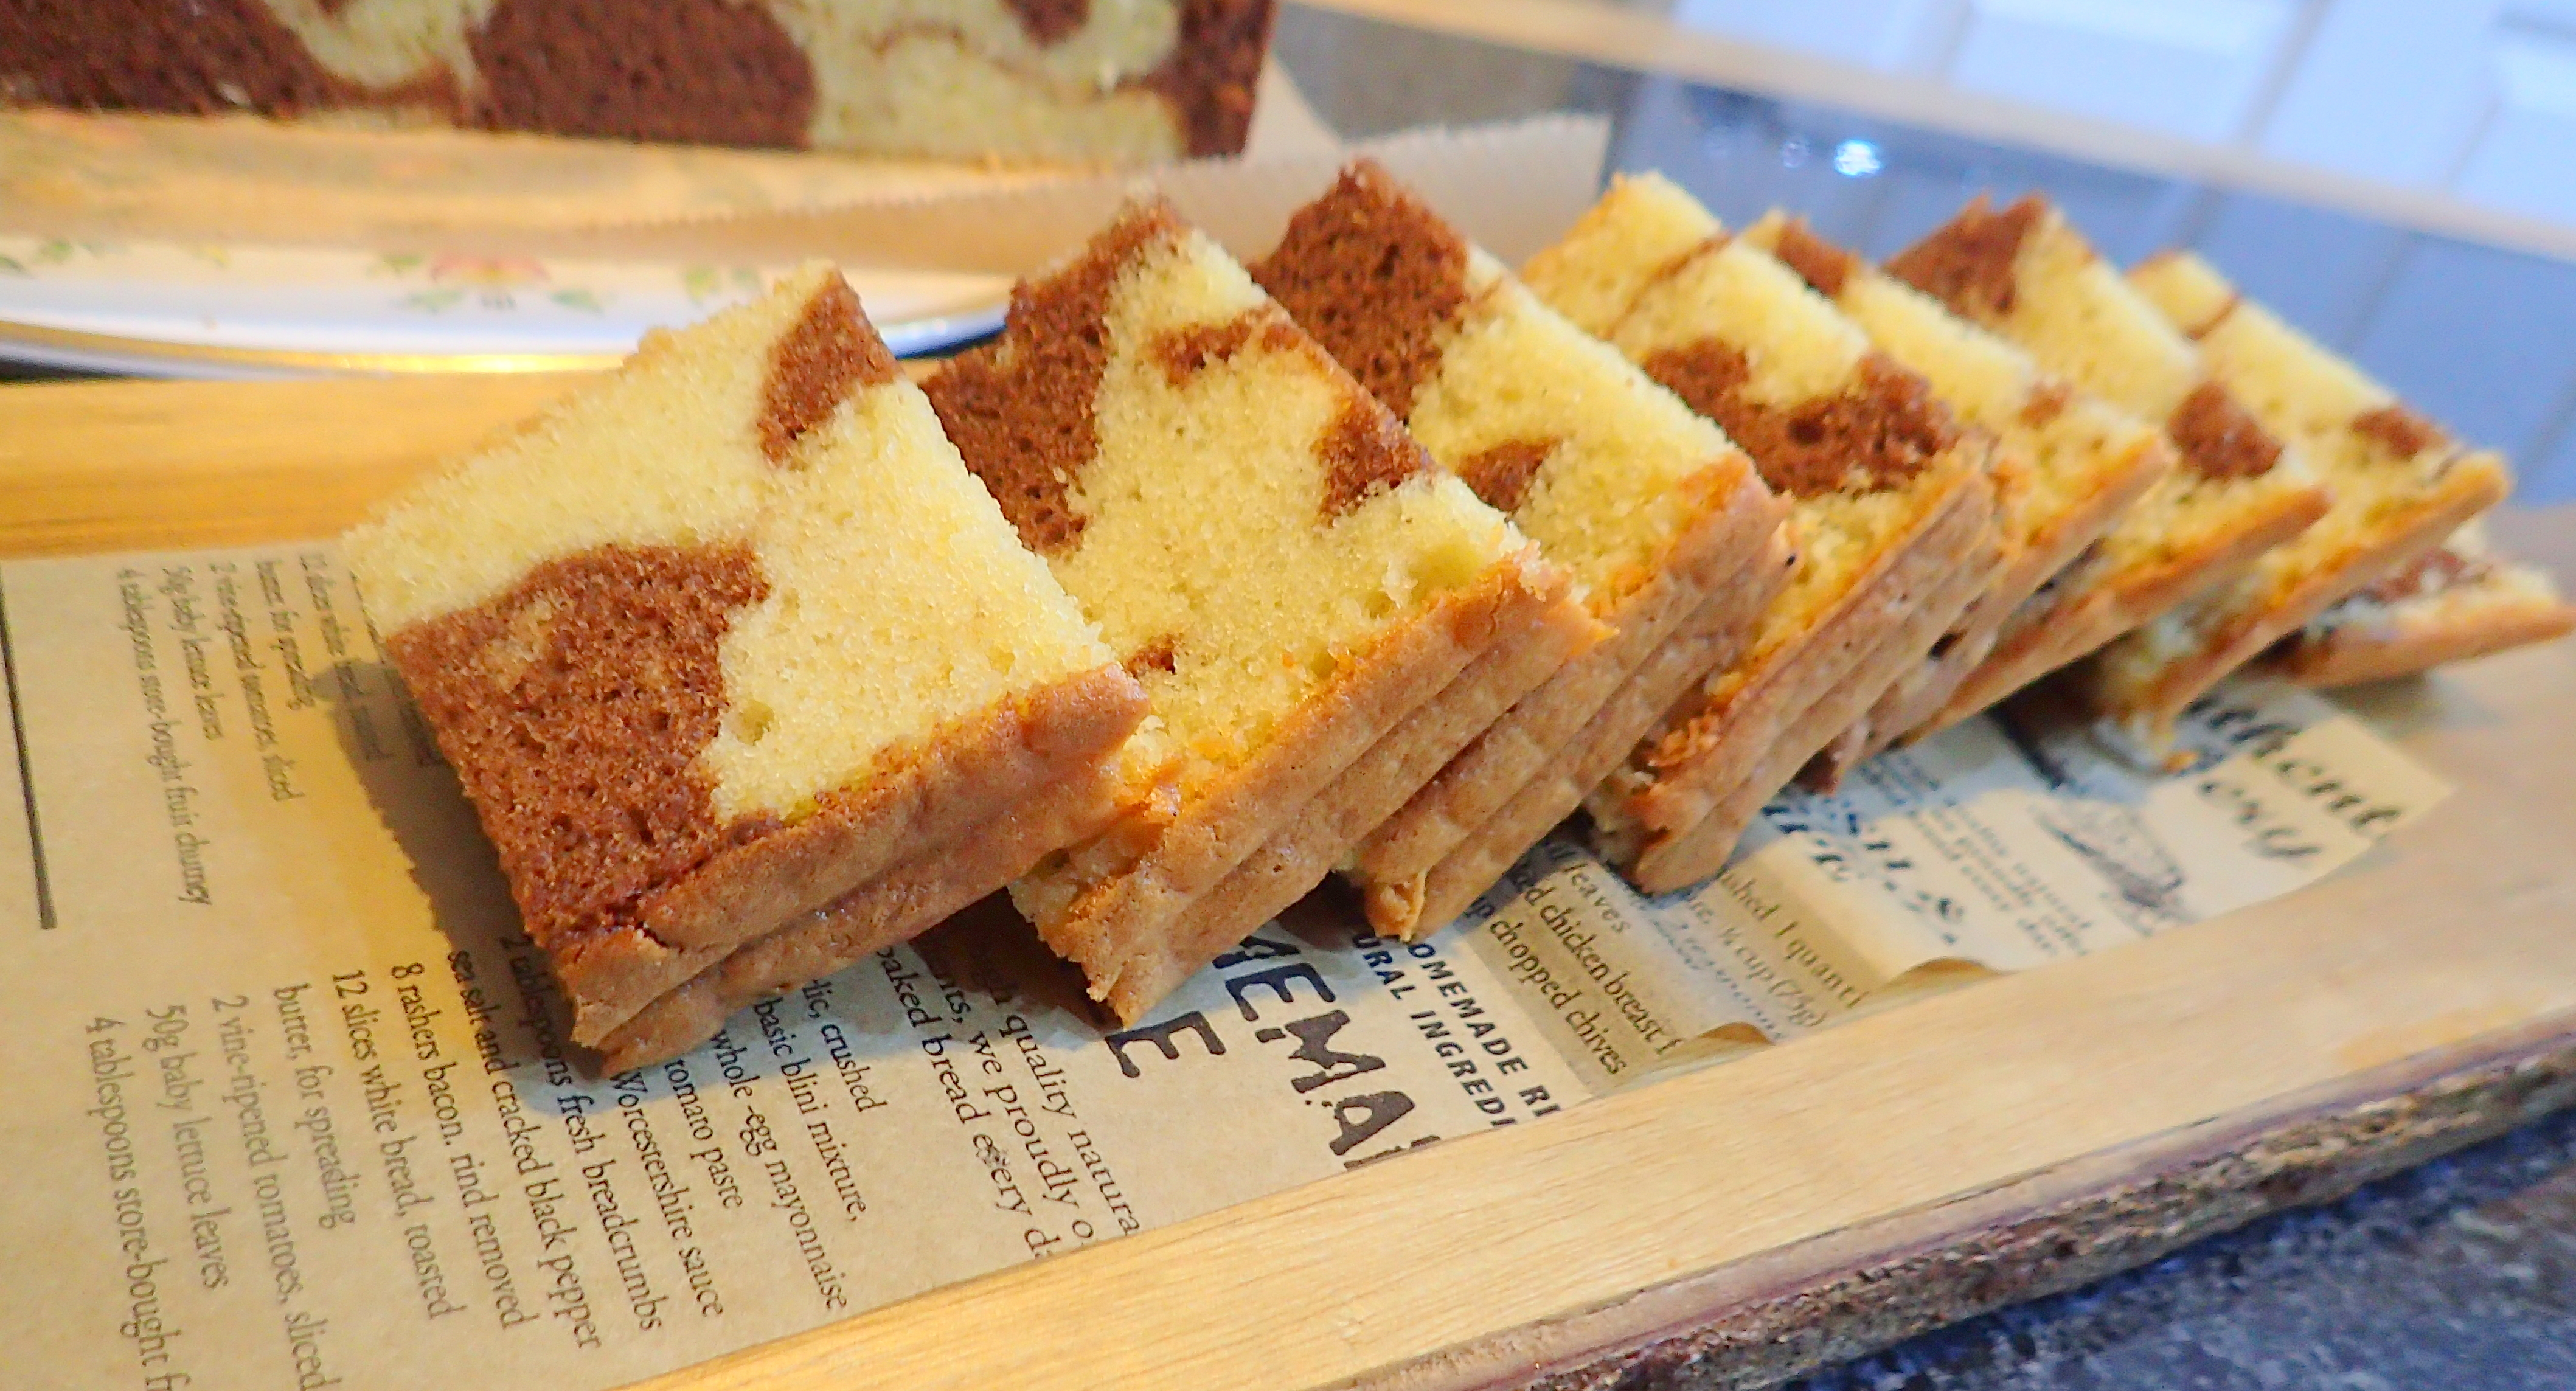 Brandy Butter Chocolate & Coffee marble cake – special